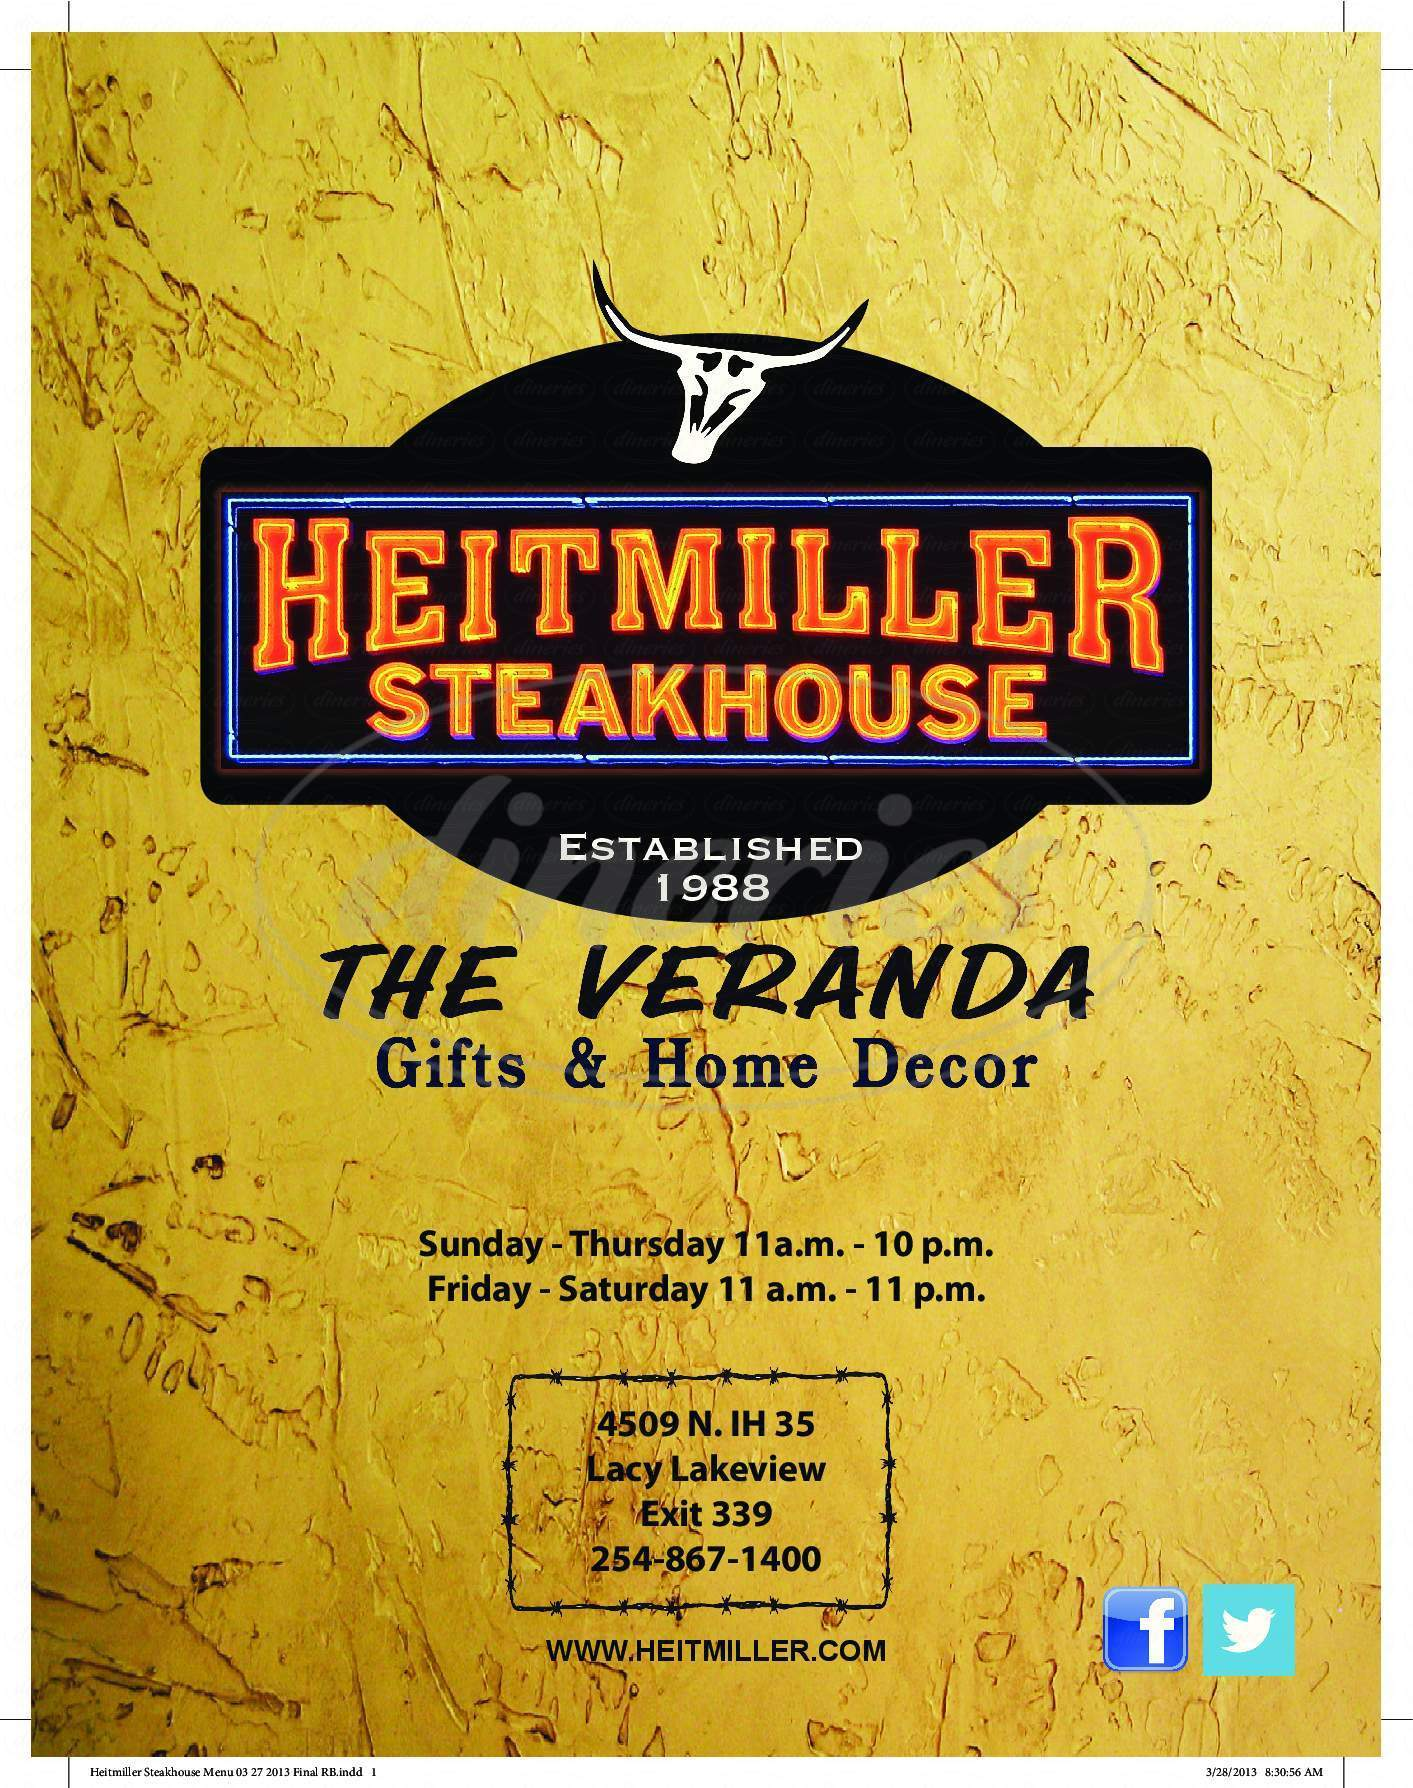 menu for Heitmiller Steakhouse